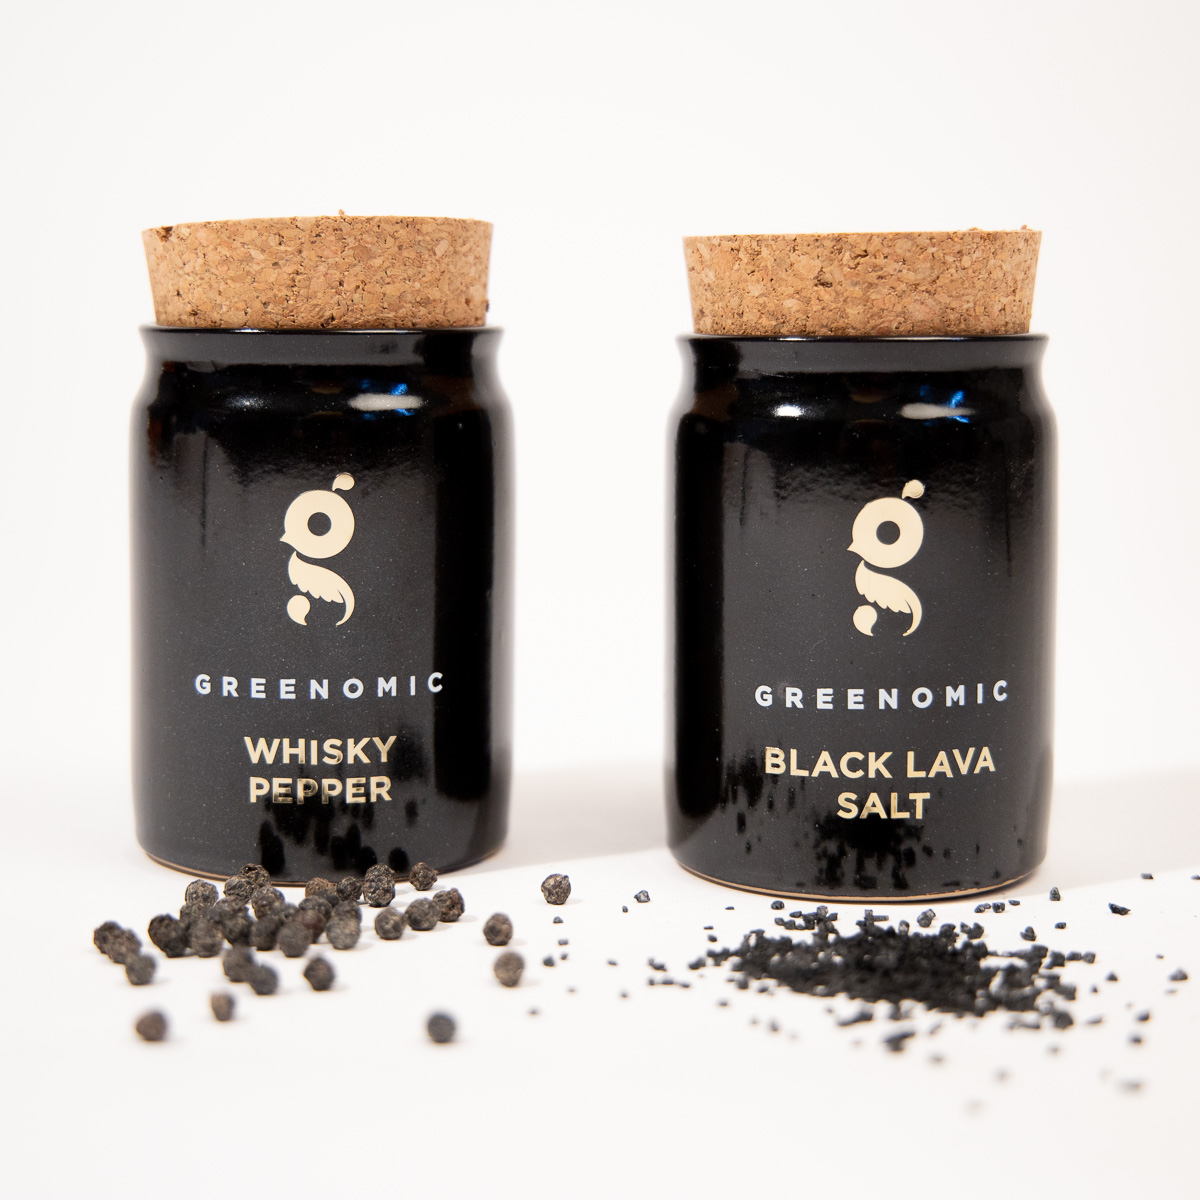 Black Lava zout of Whisky peper